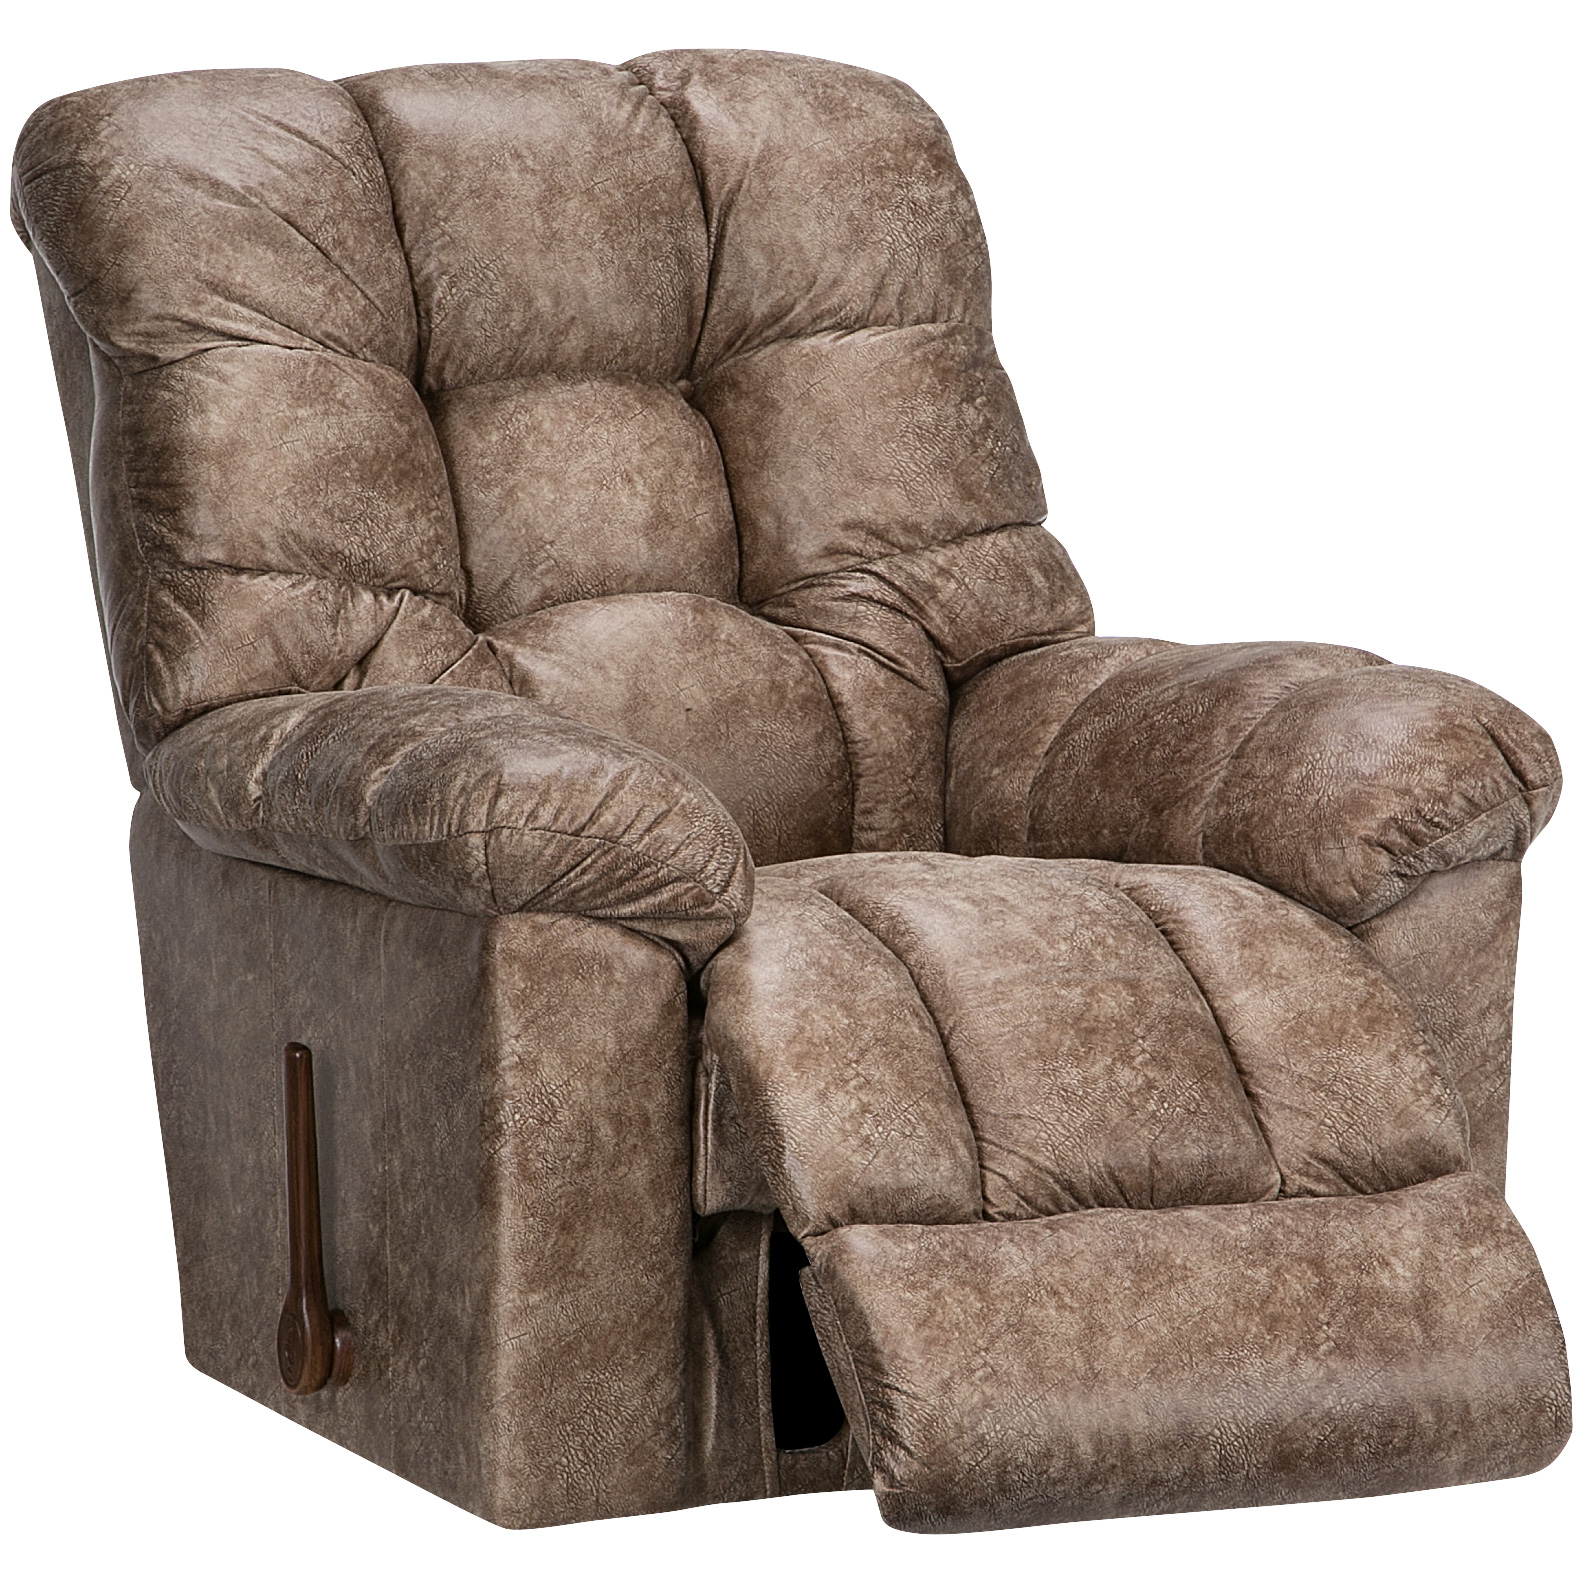 La-Z-Boy | Gibson Silt Rocker Recliner Chair